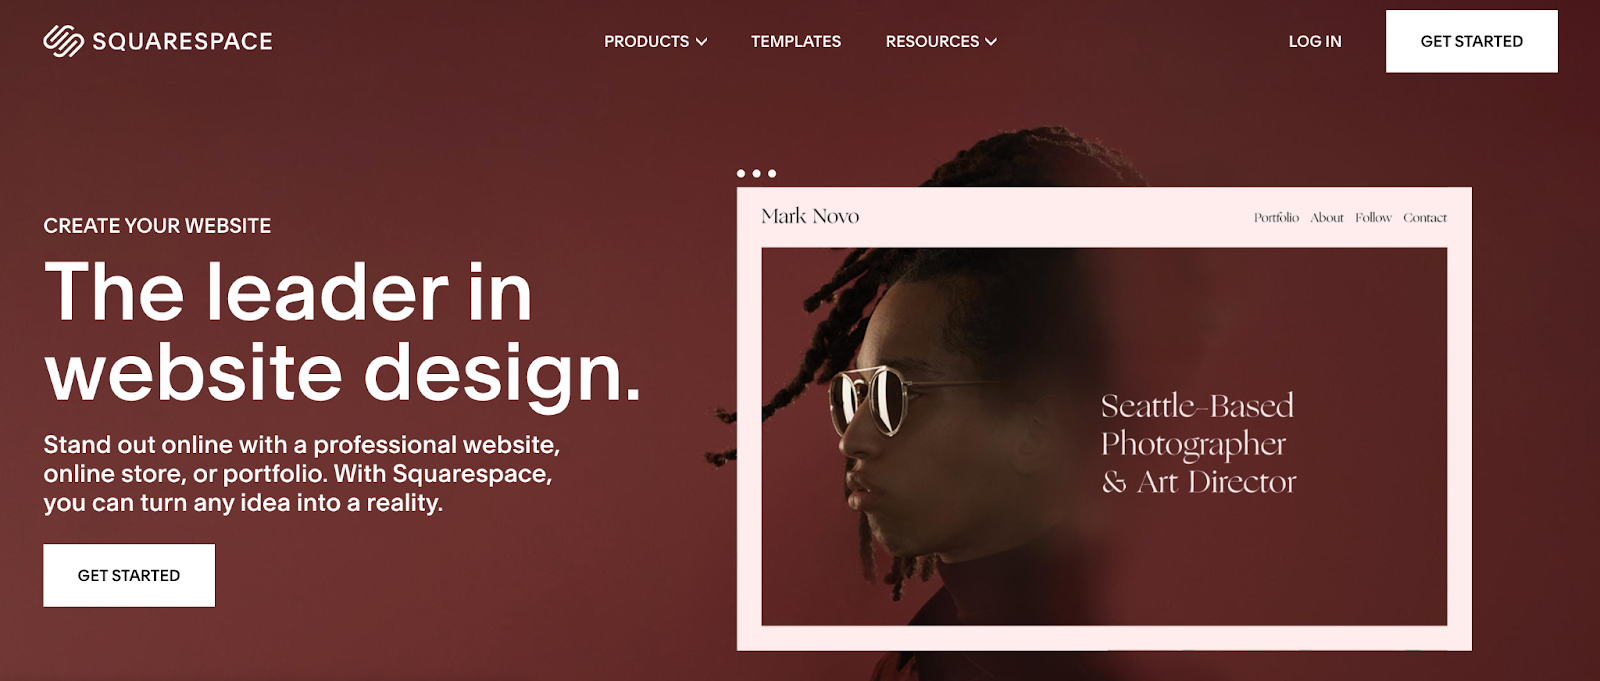 Clean and modern works well for a web design agency.